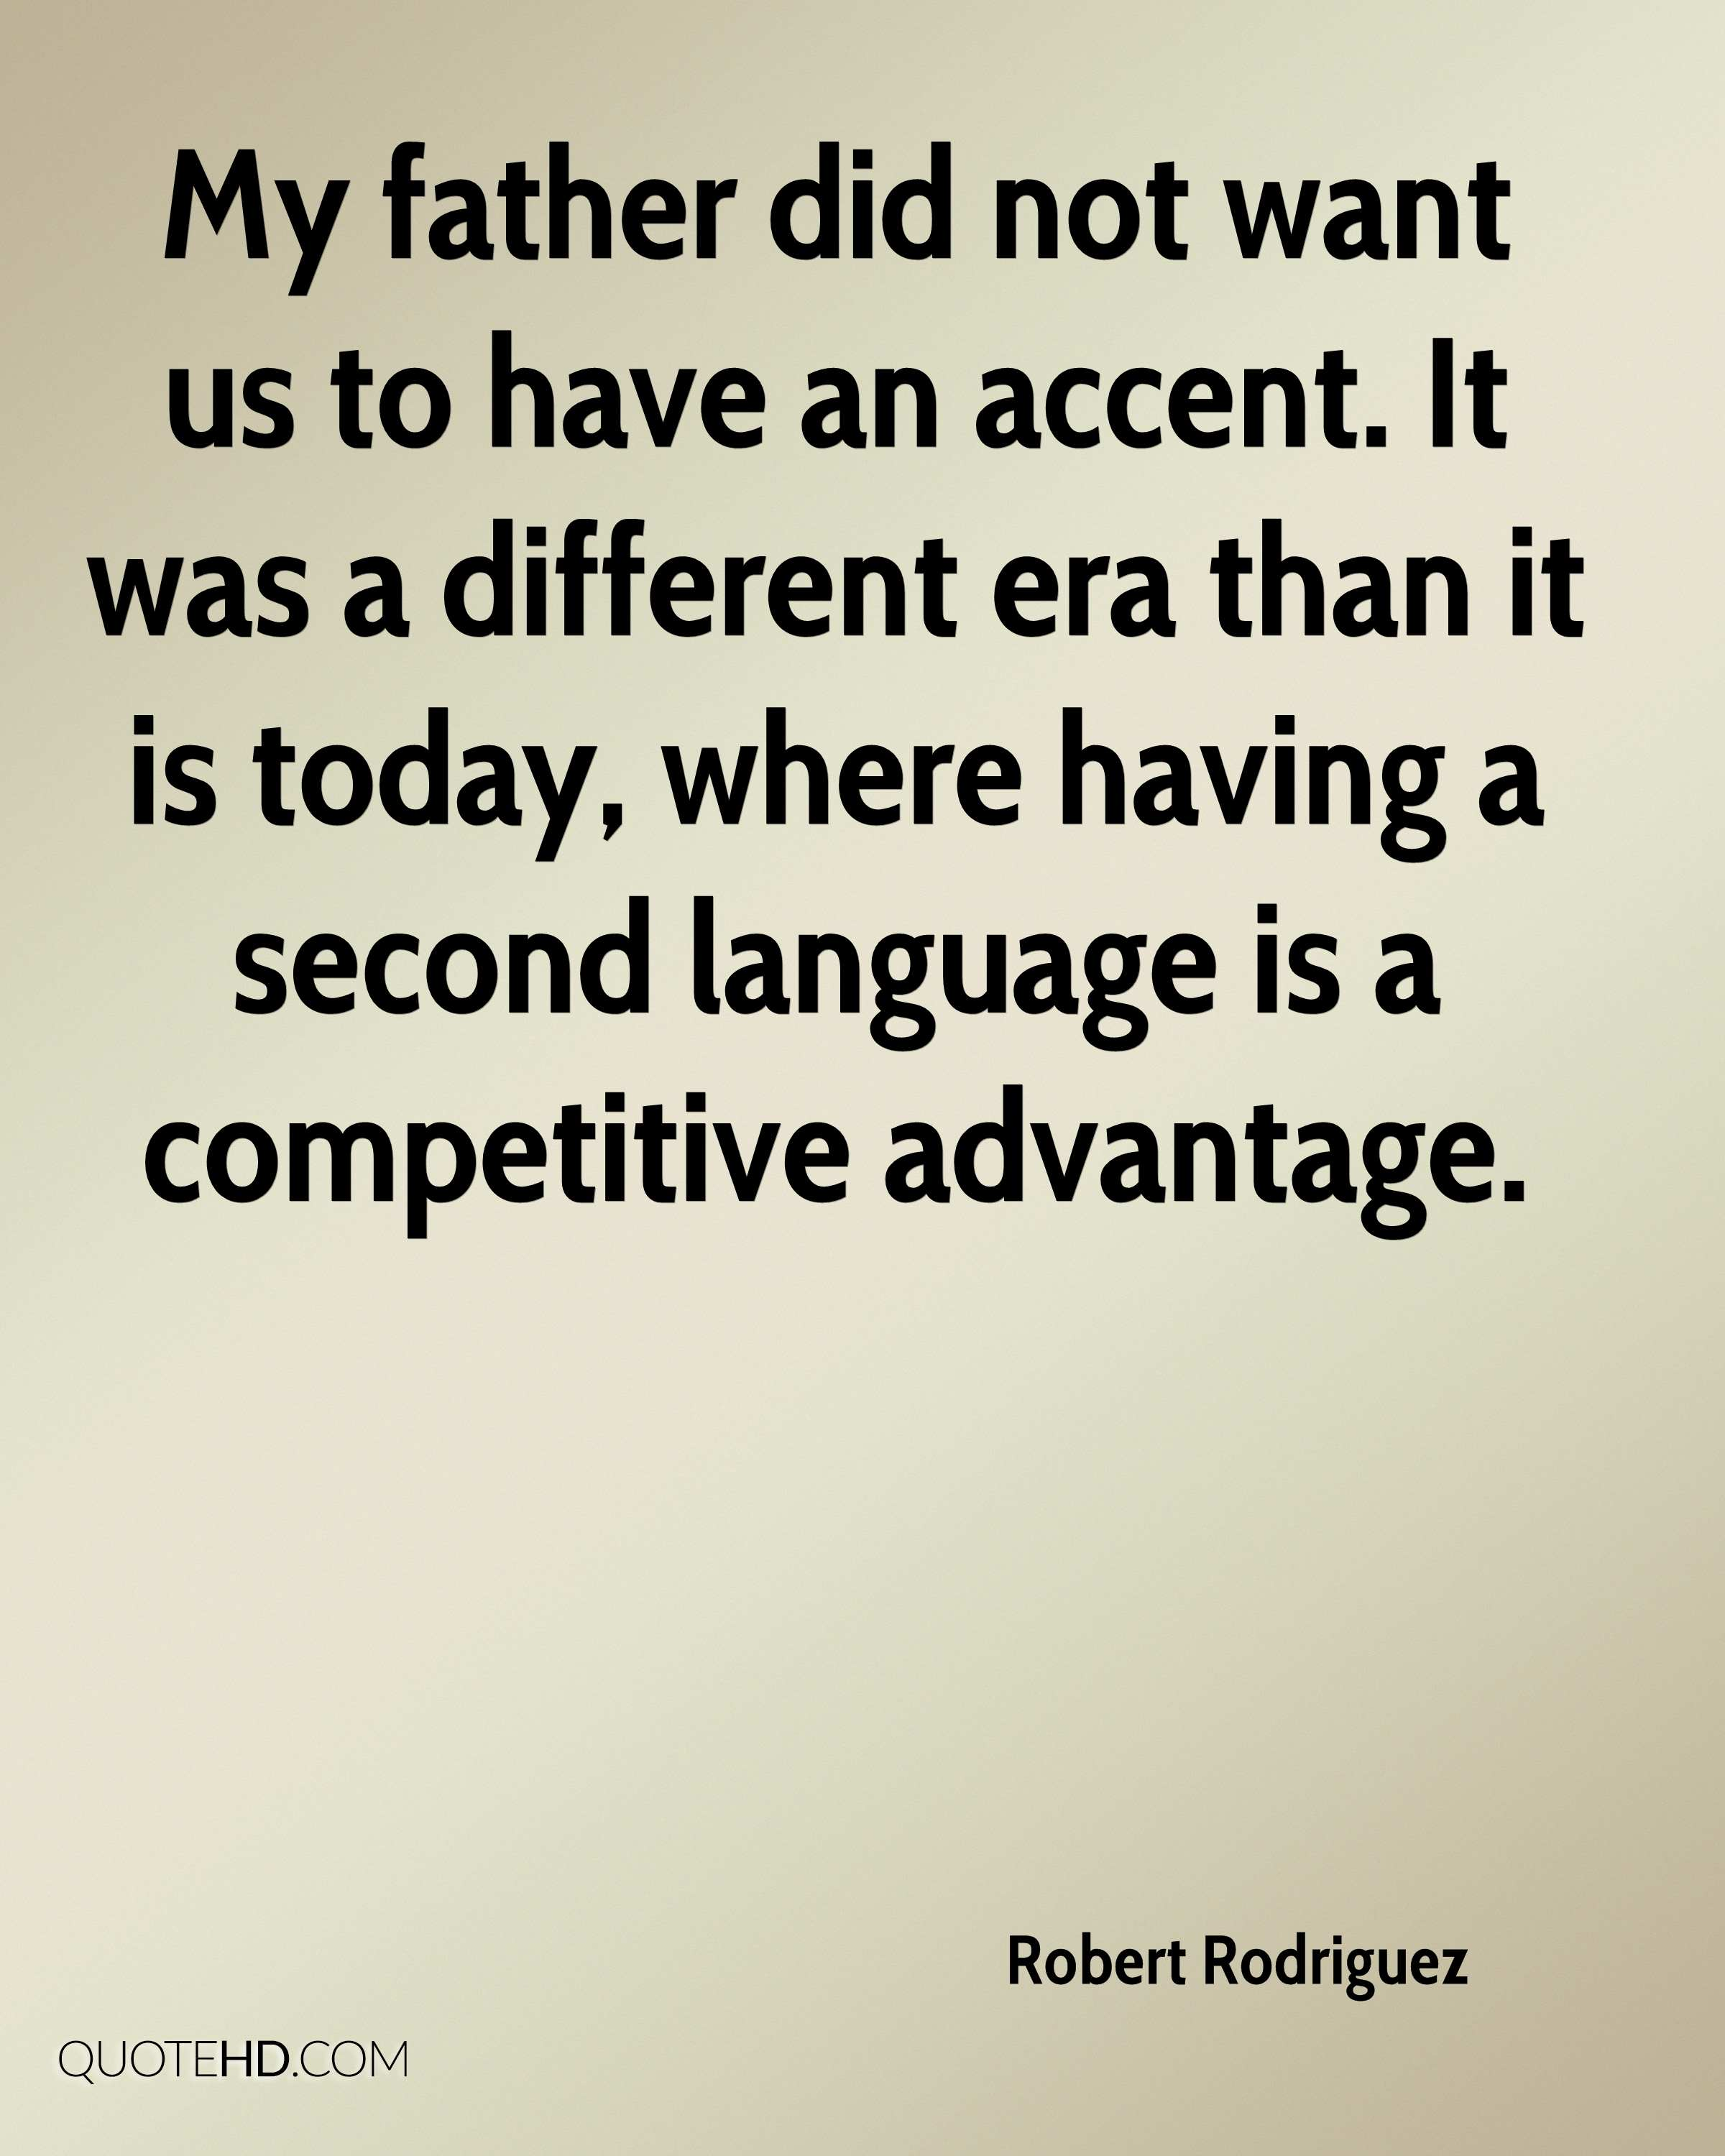 My father did not want us to have an accent. It was a different era than it is today, where having a second language is a competitive advantage.